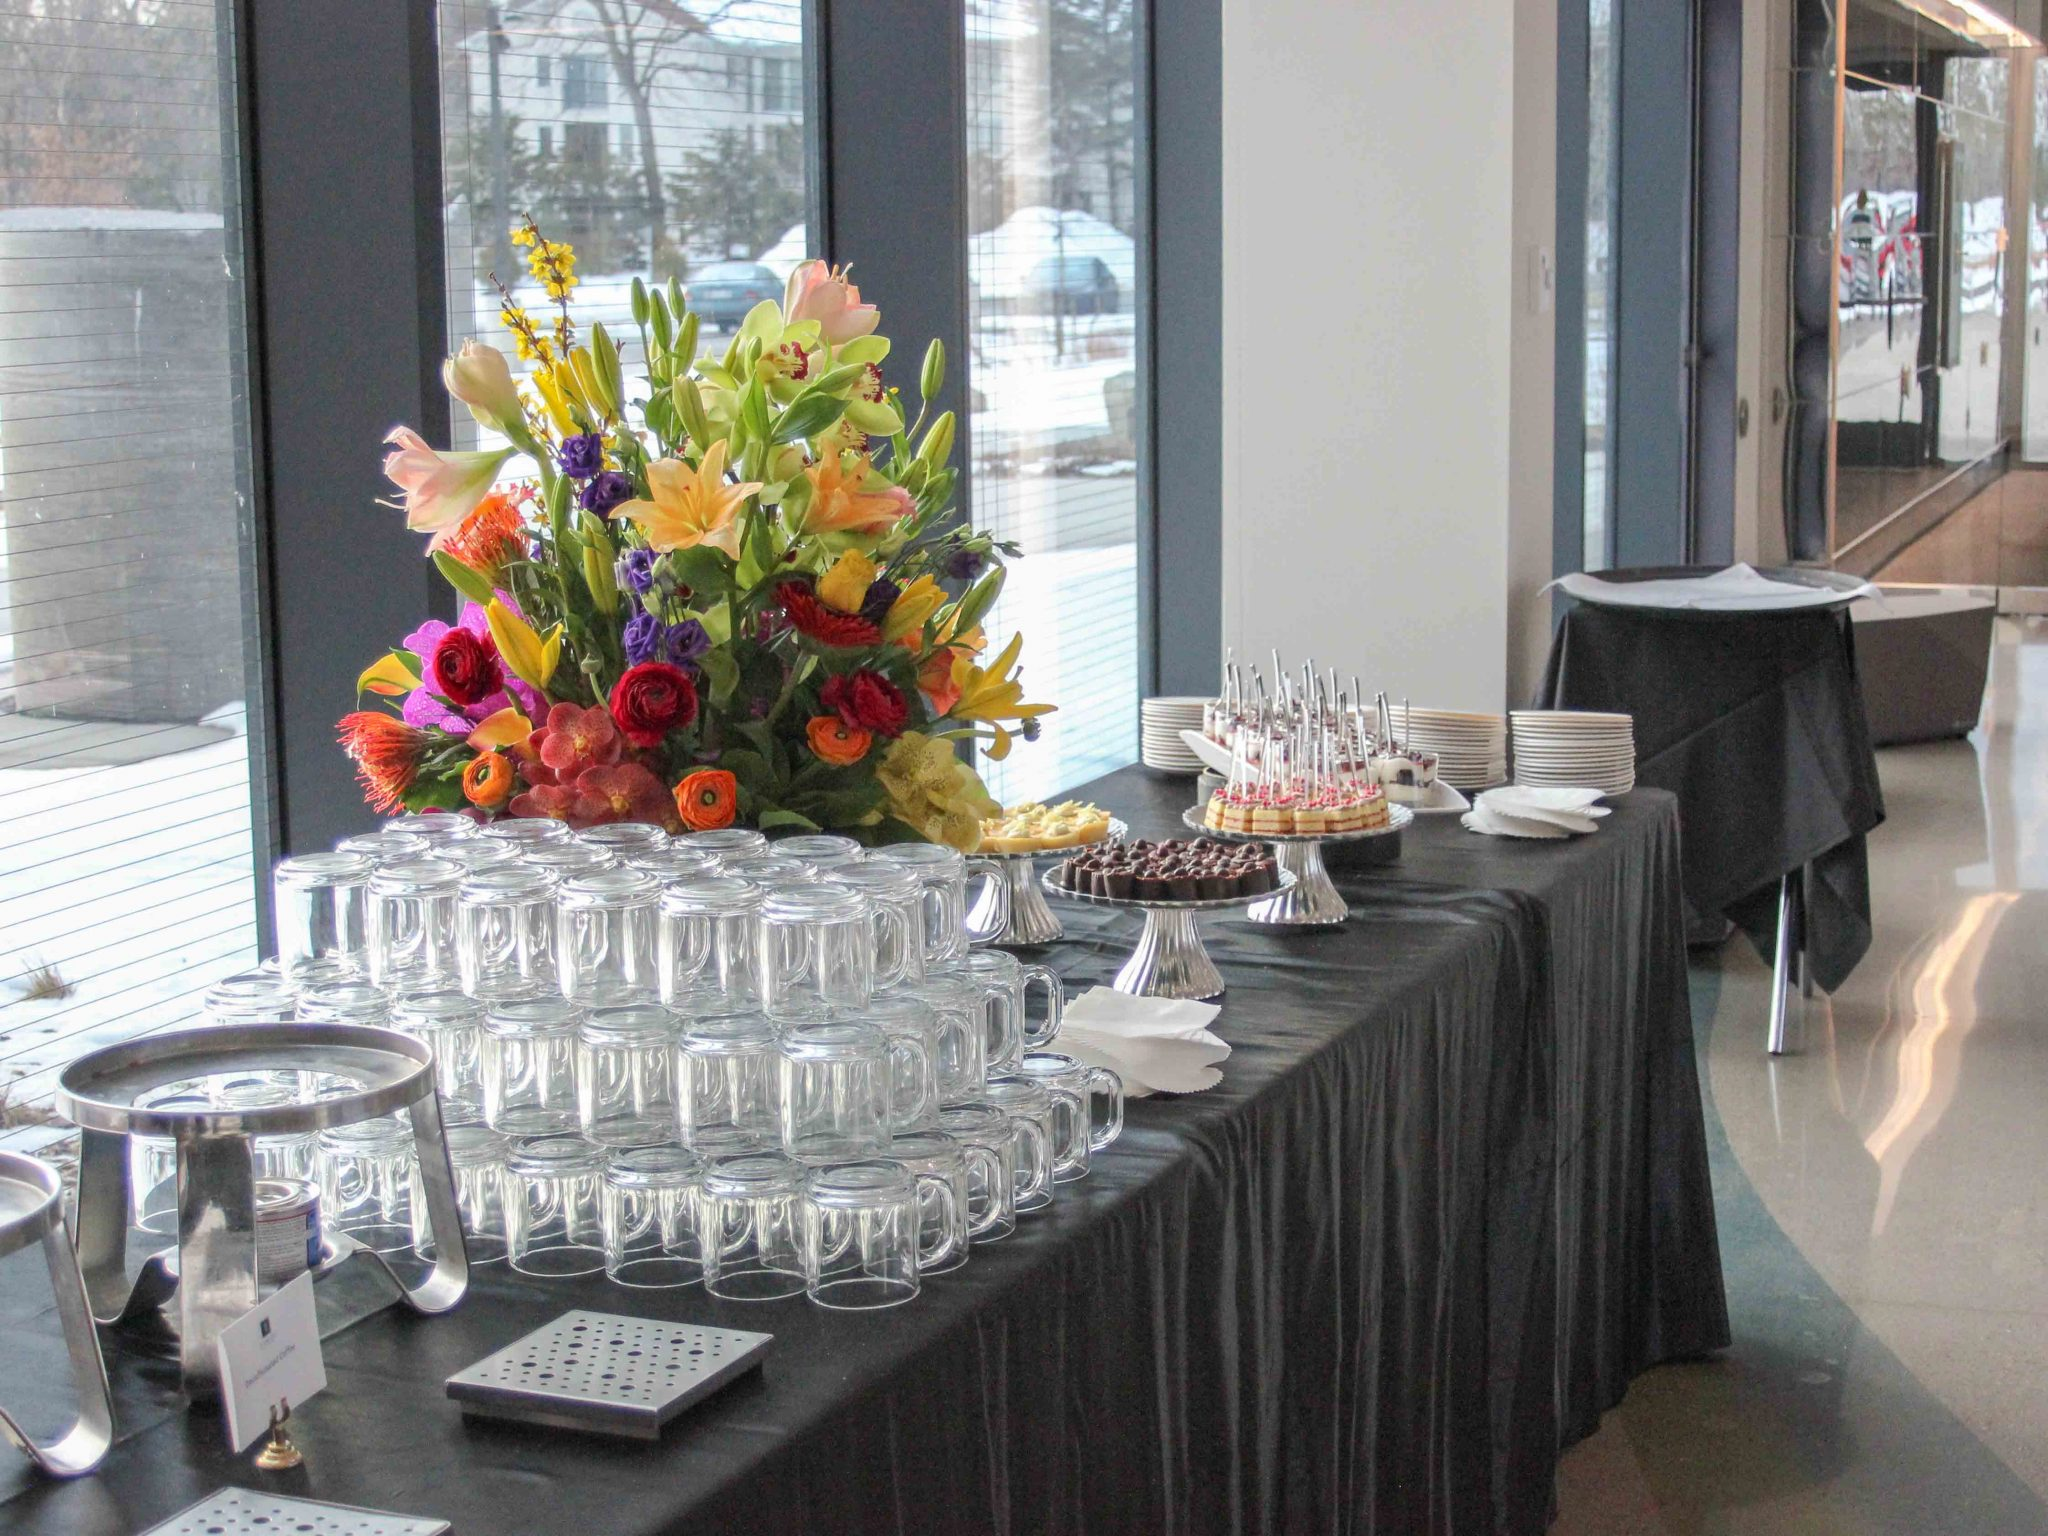 Large floral display on dessert buffet table in front of a wall of windows